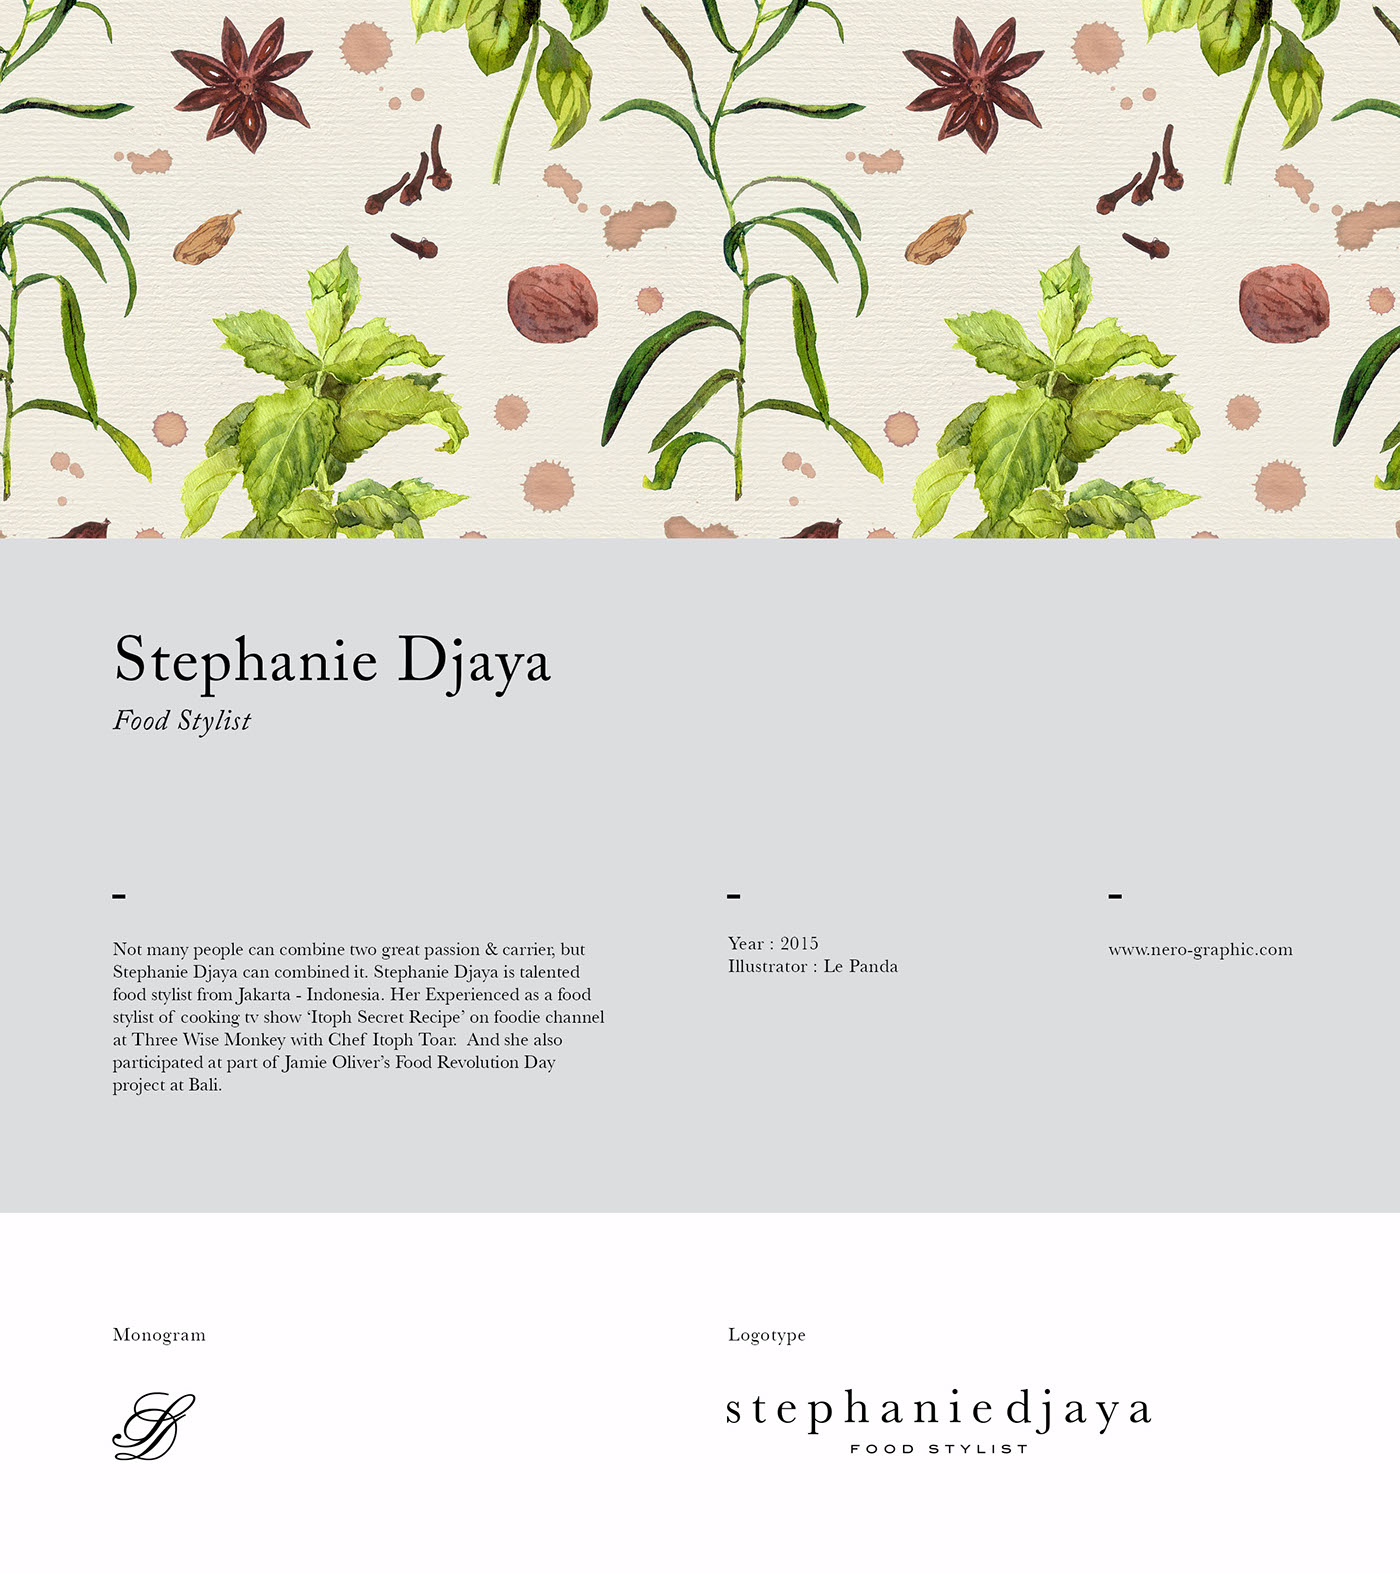 Stephanie djaya food stylist on behance forumfinder